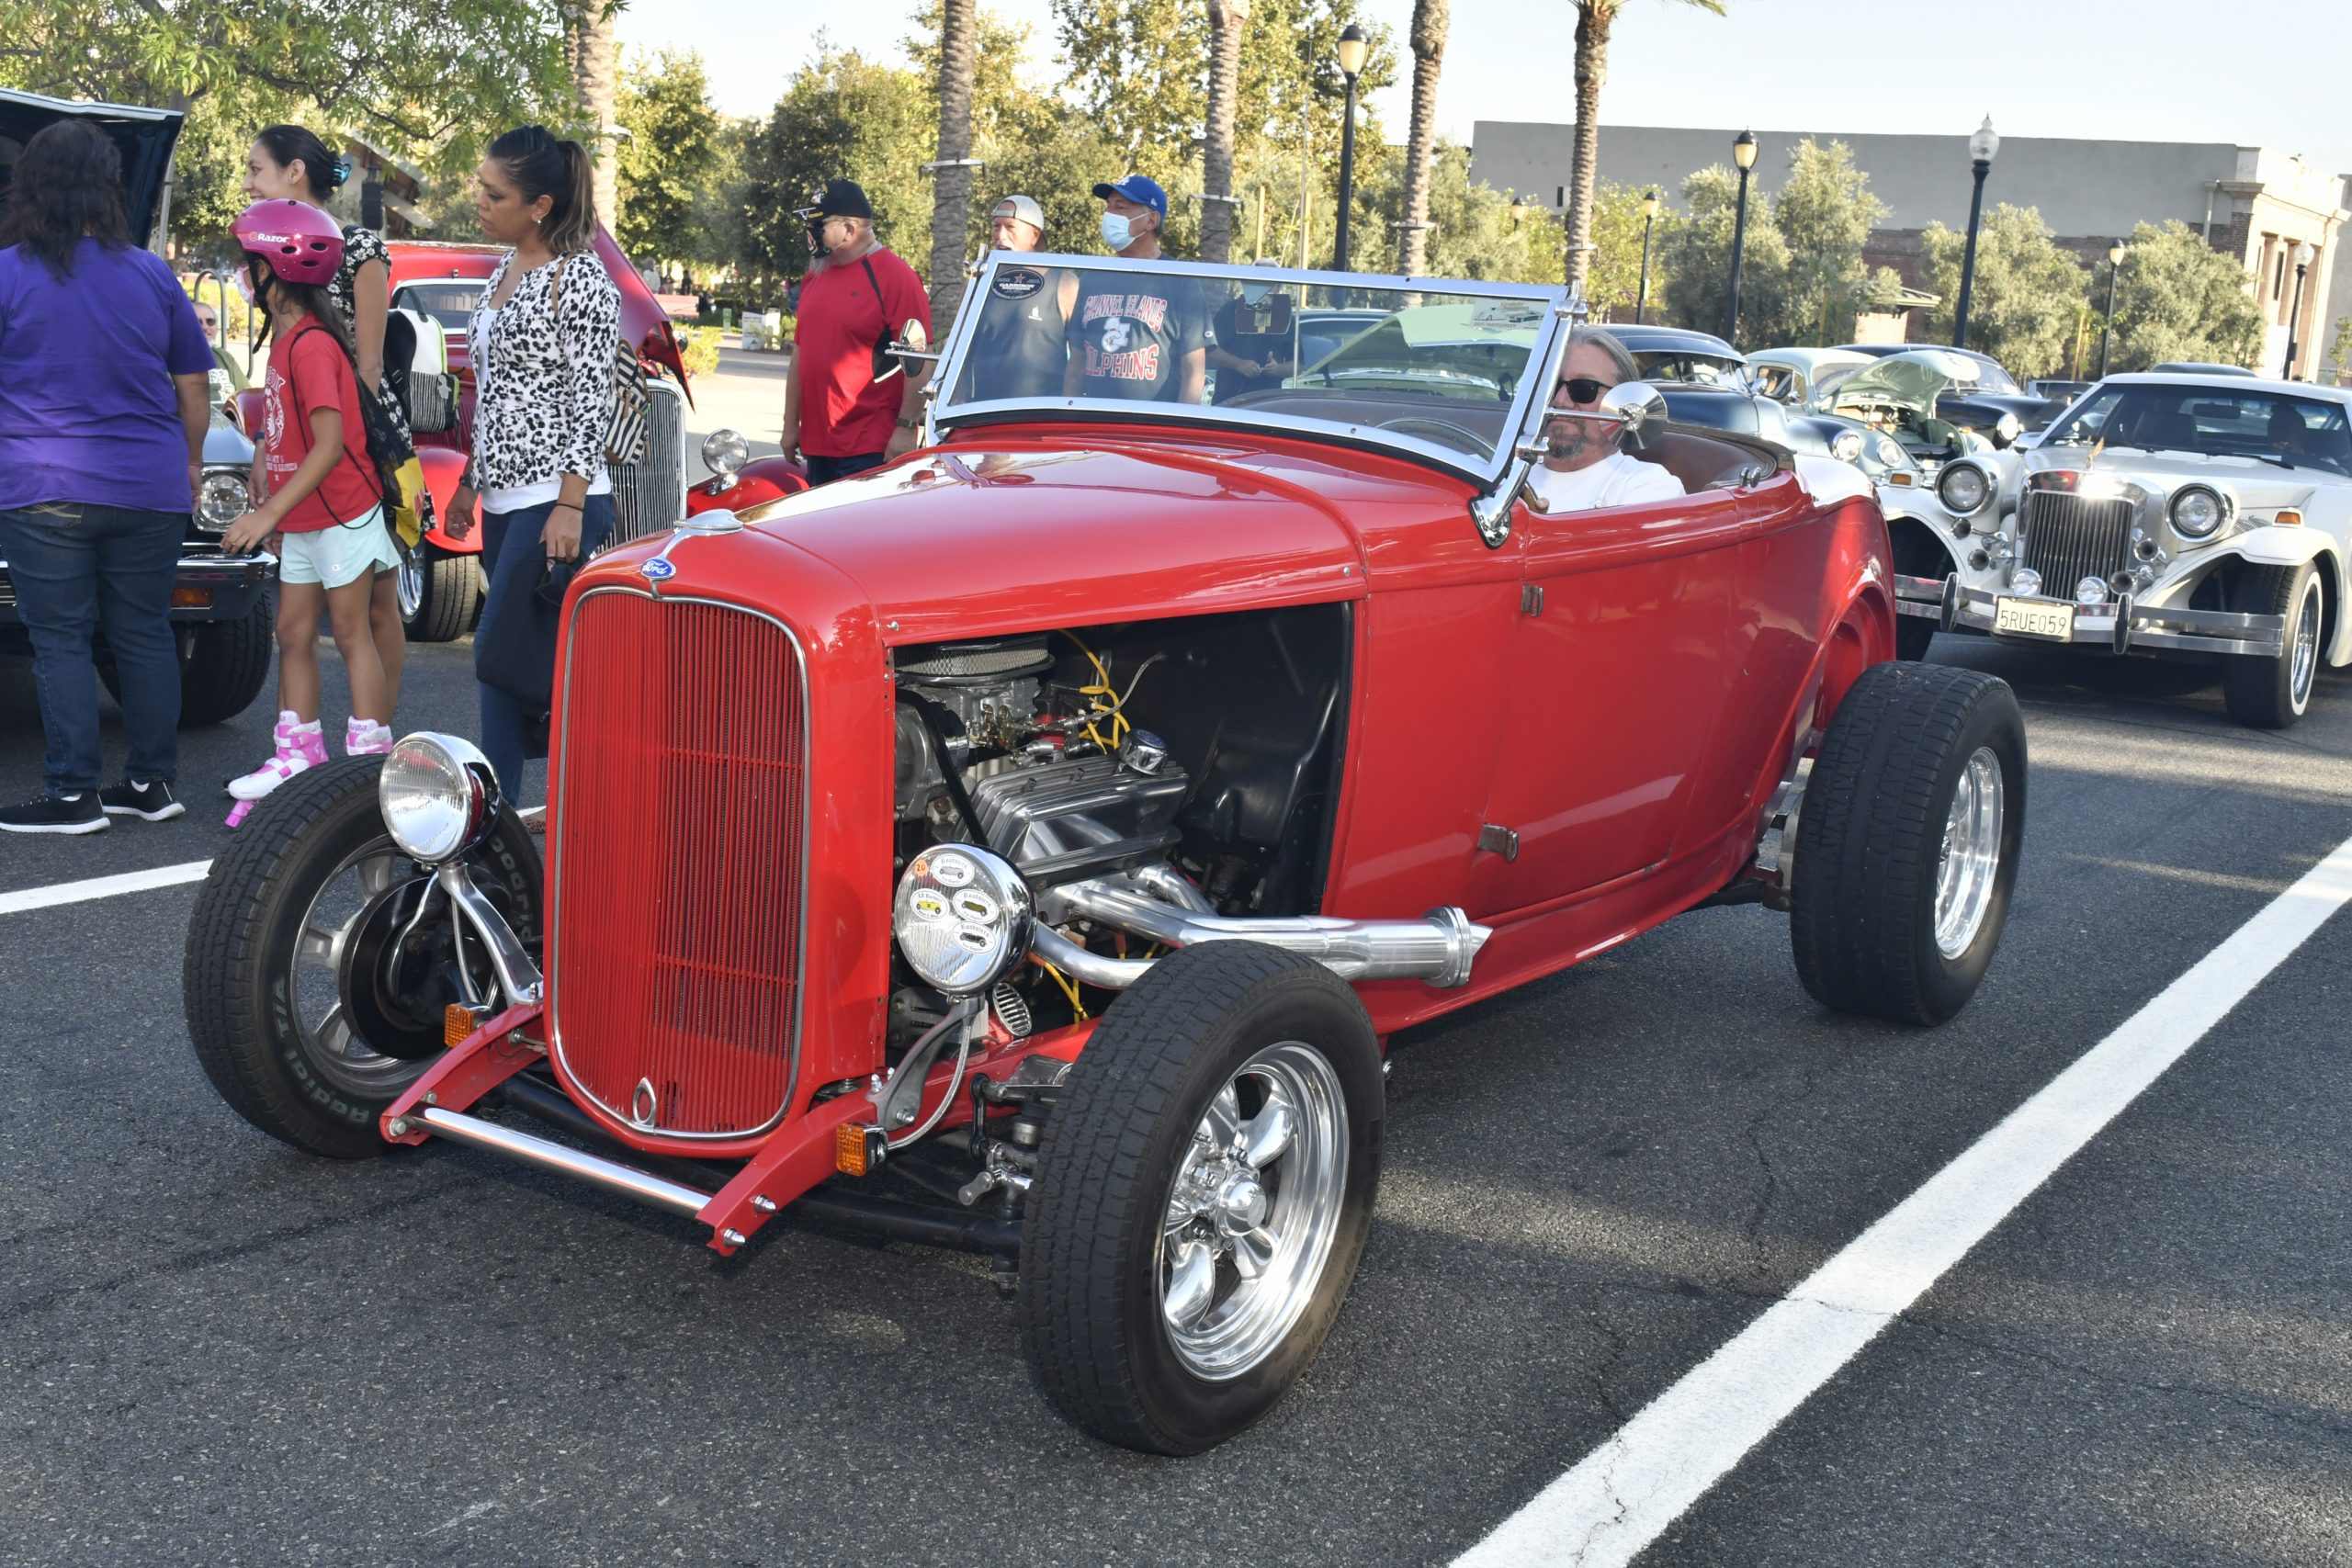 Route 66 Reunion rear hot rod 32 ford